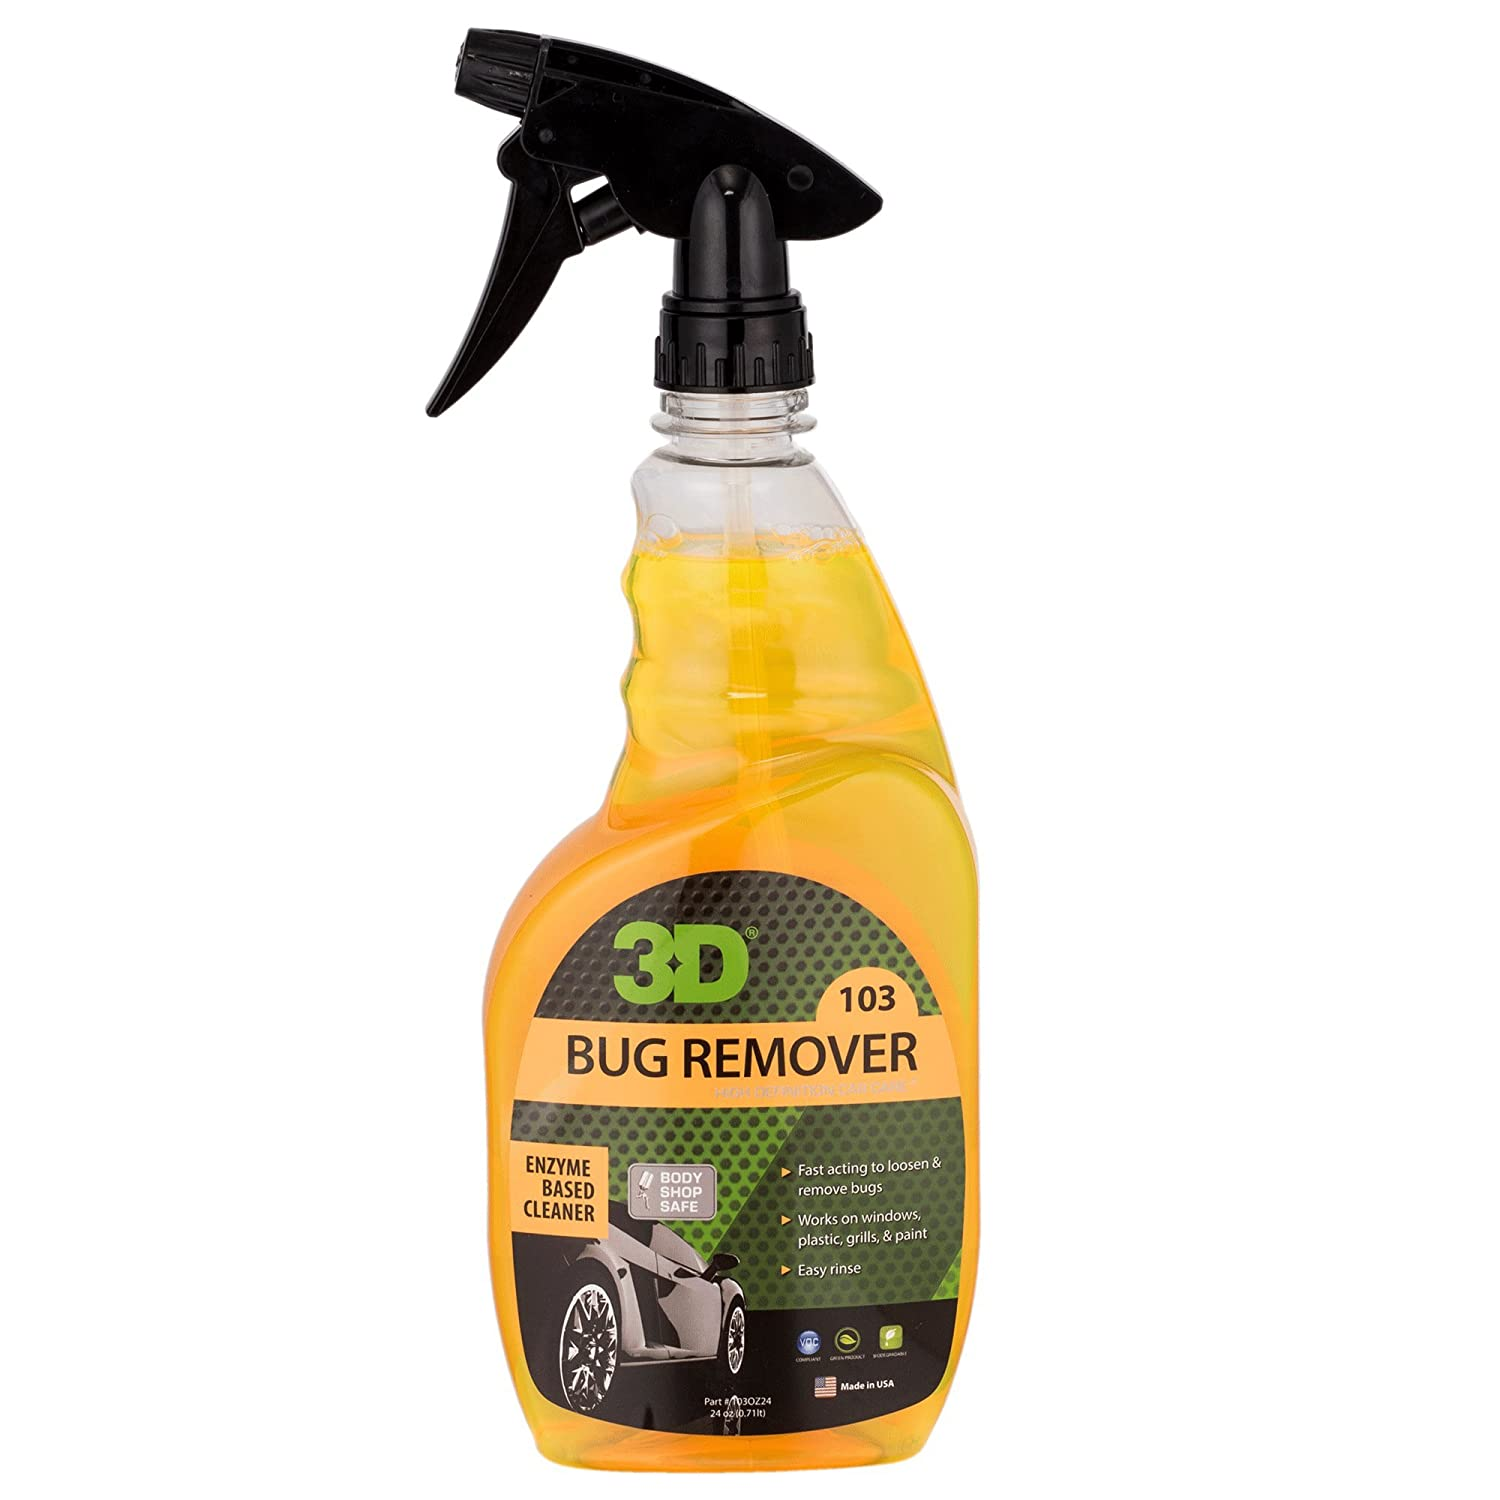 3D Bug Remover - 24 oz. | Enzyme Based Cleaner | Concentrated Degreaser | Removes Insects & Bugs | Made in USA | All Natural | No Harmful Chemicals 3D Car Care Products 4332943997